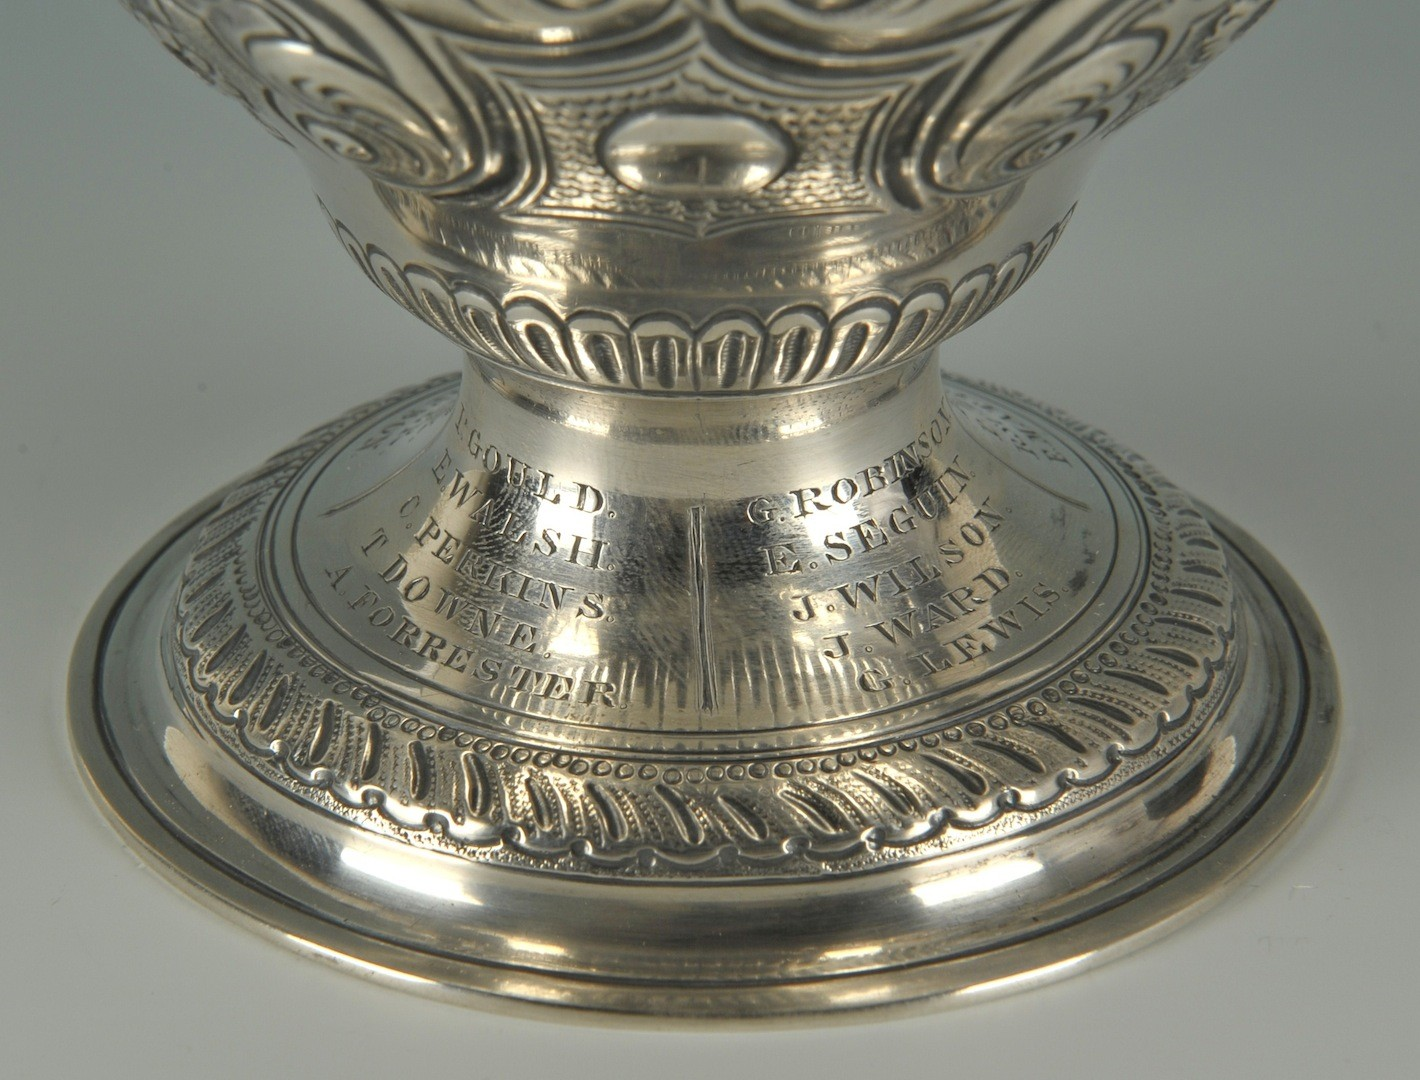 Lot __ Inv. #3942: 18th Century English Two Handled Cup